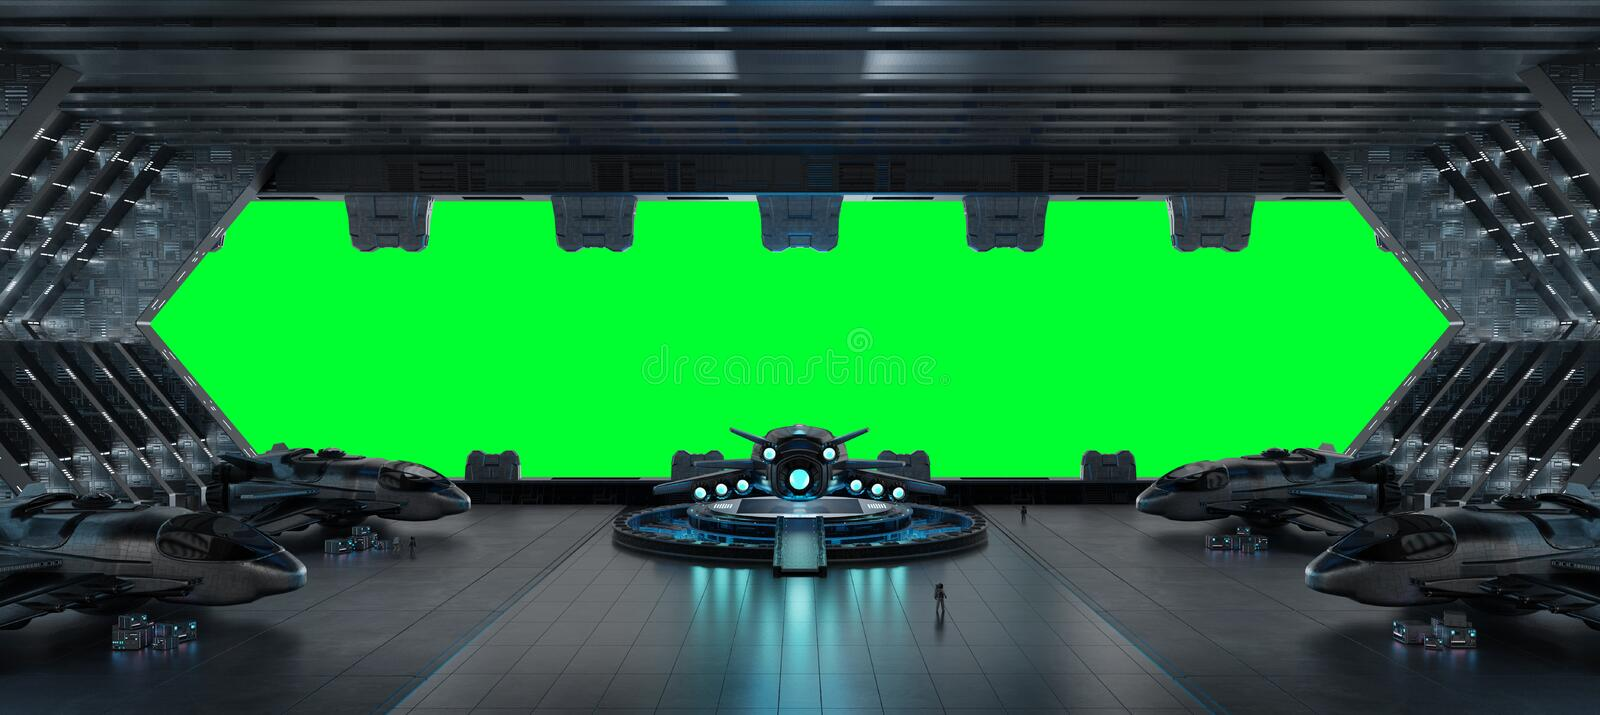 Llanding strip spaceship interior isolated on green background 3 royalty free illustration